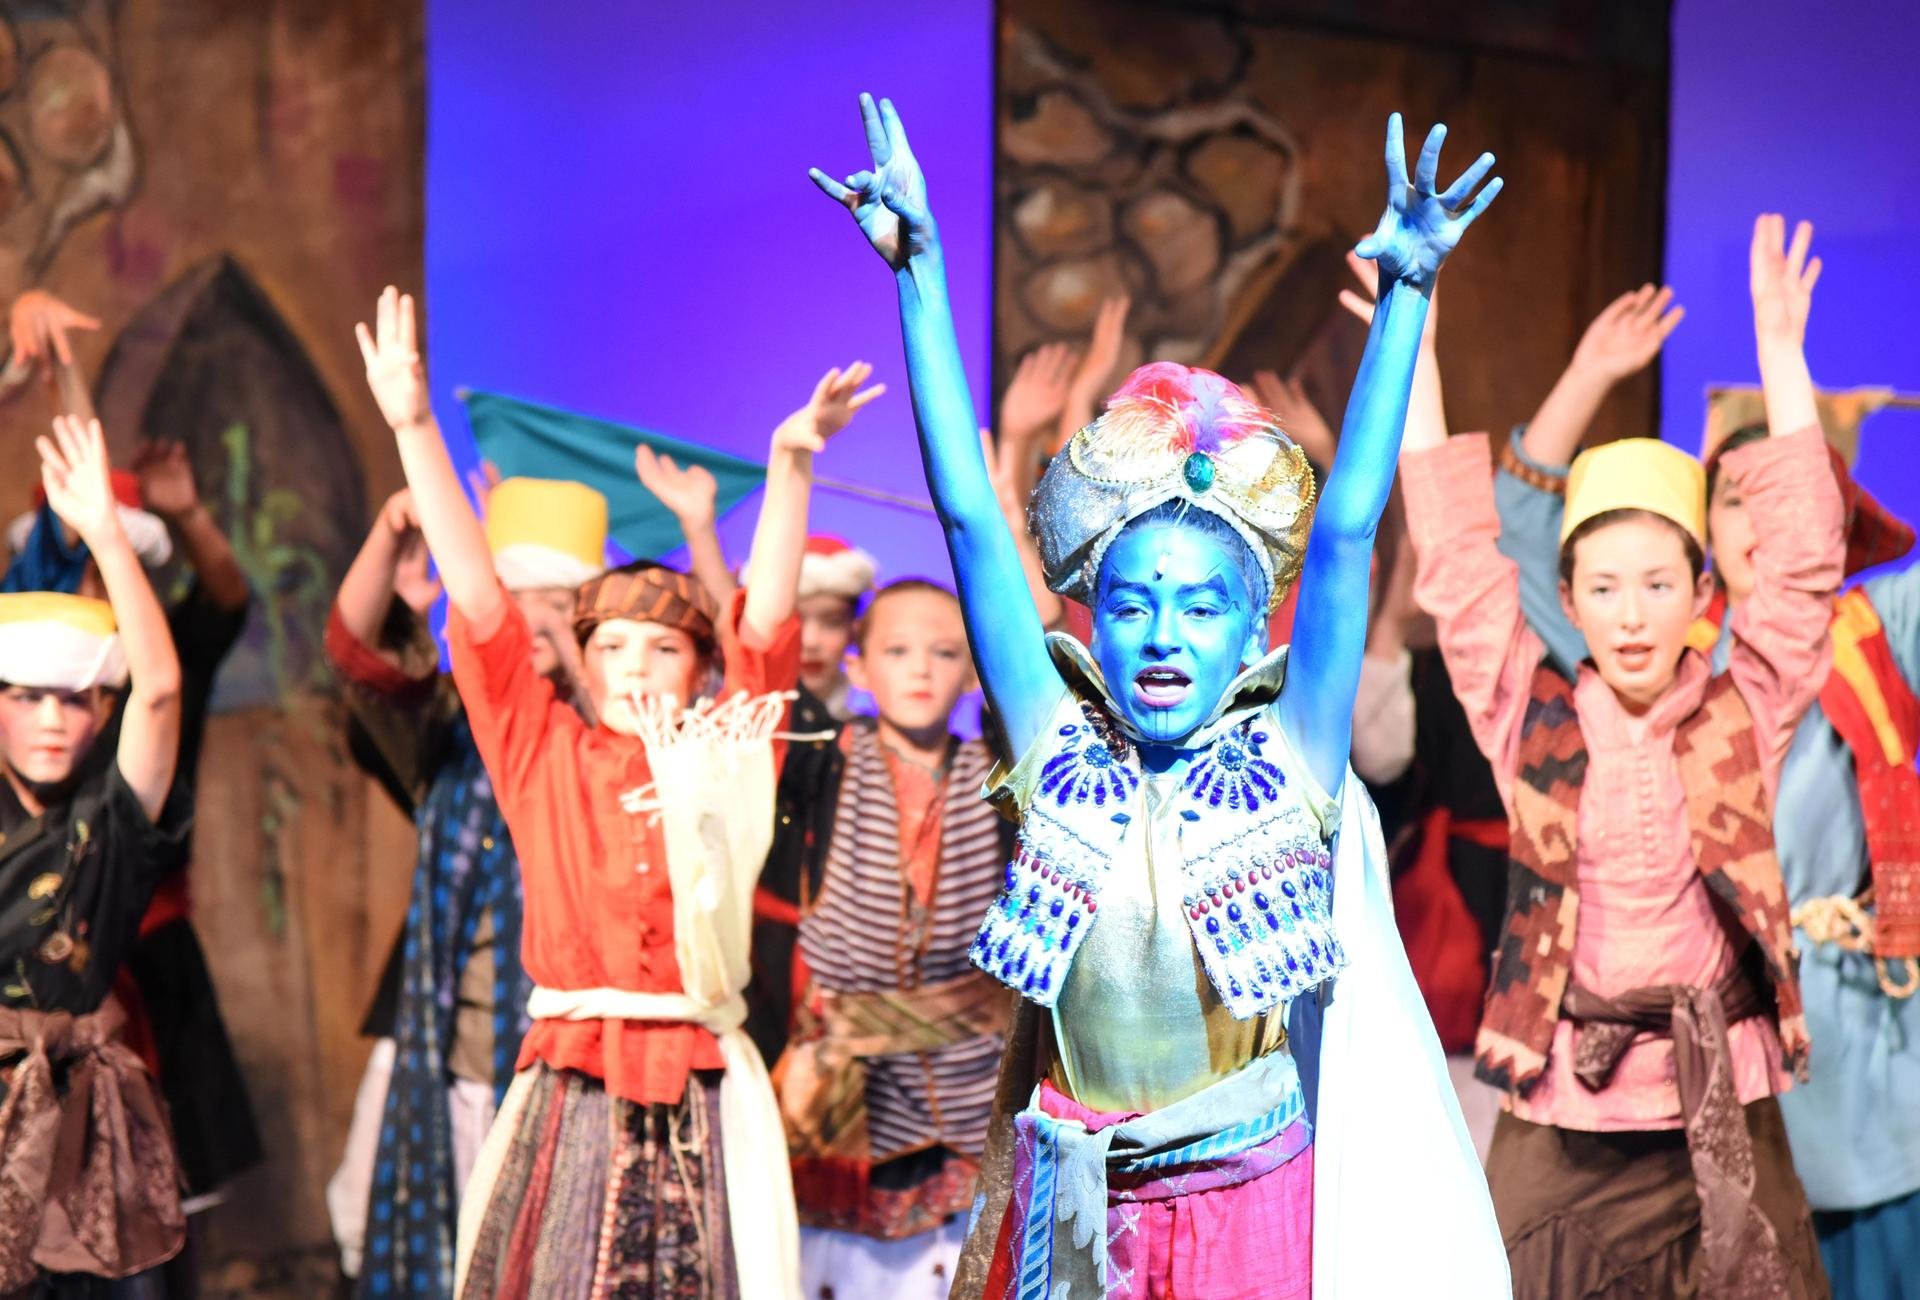 Middle school students perform a song and dance routine from Aladdin Jr.